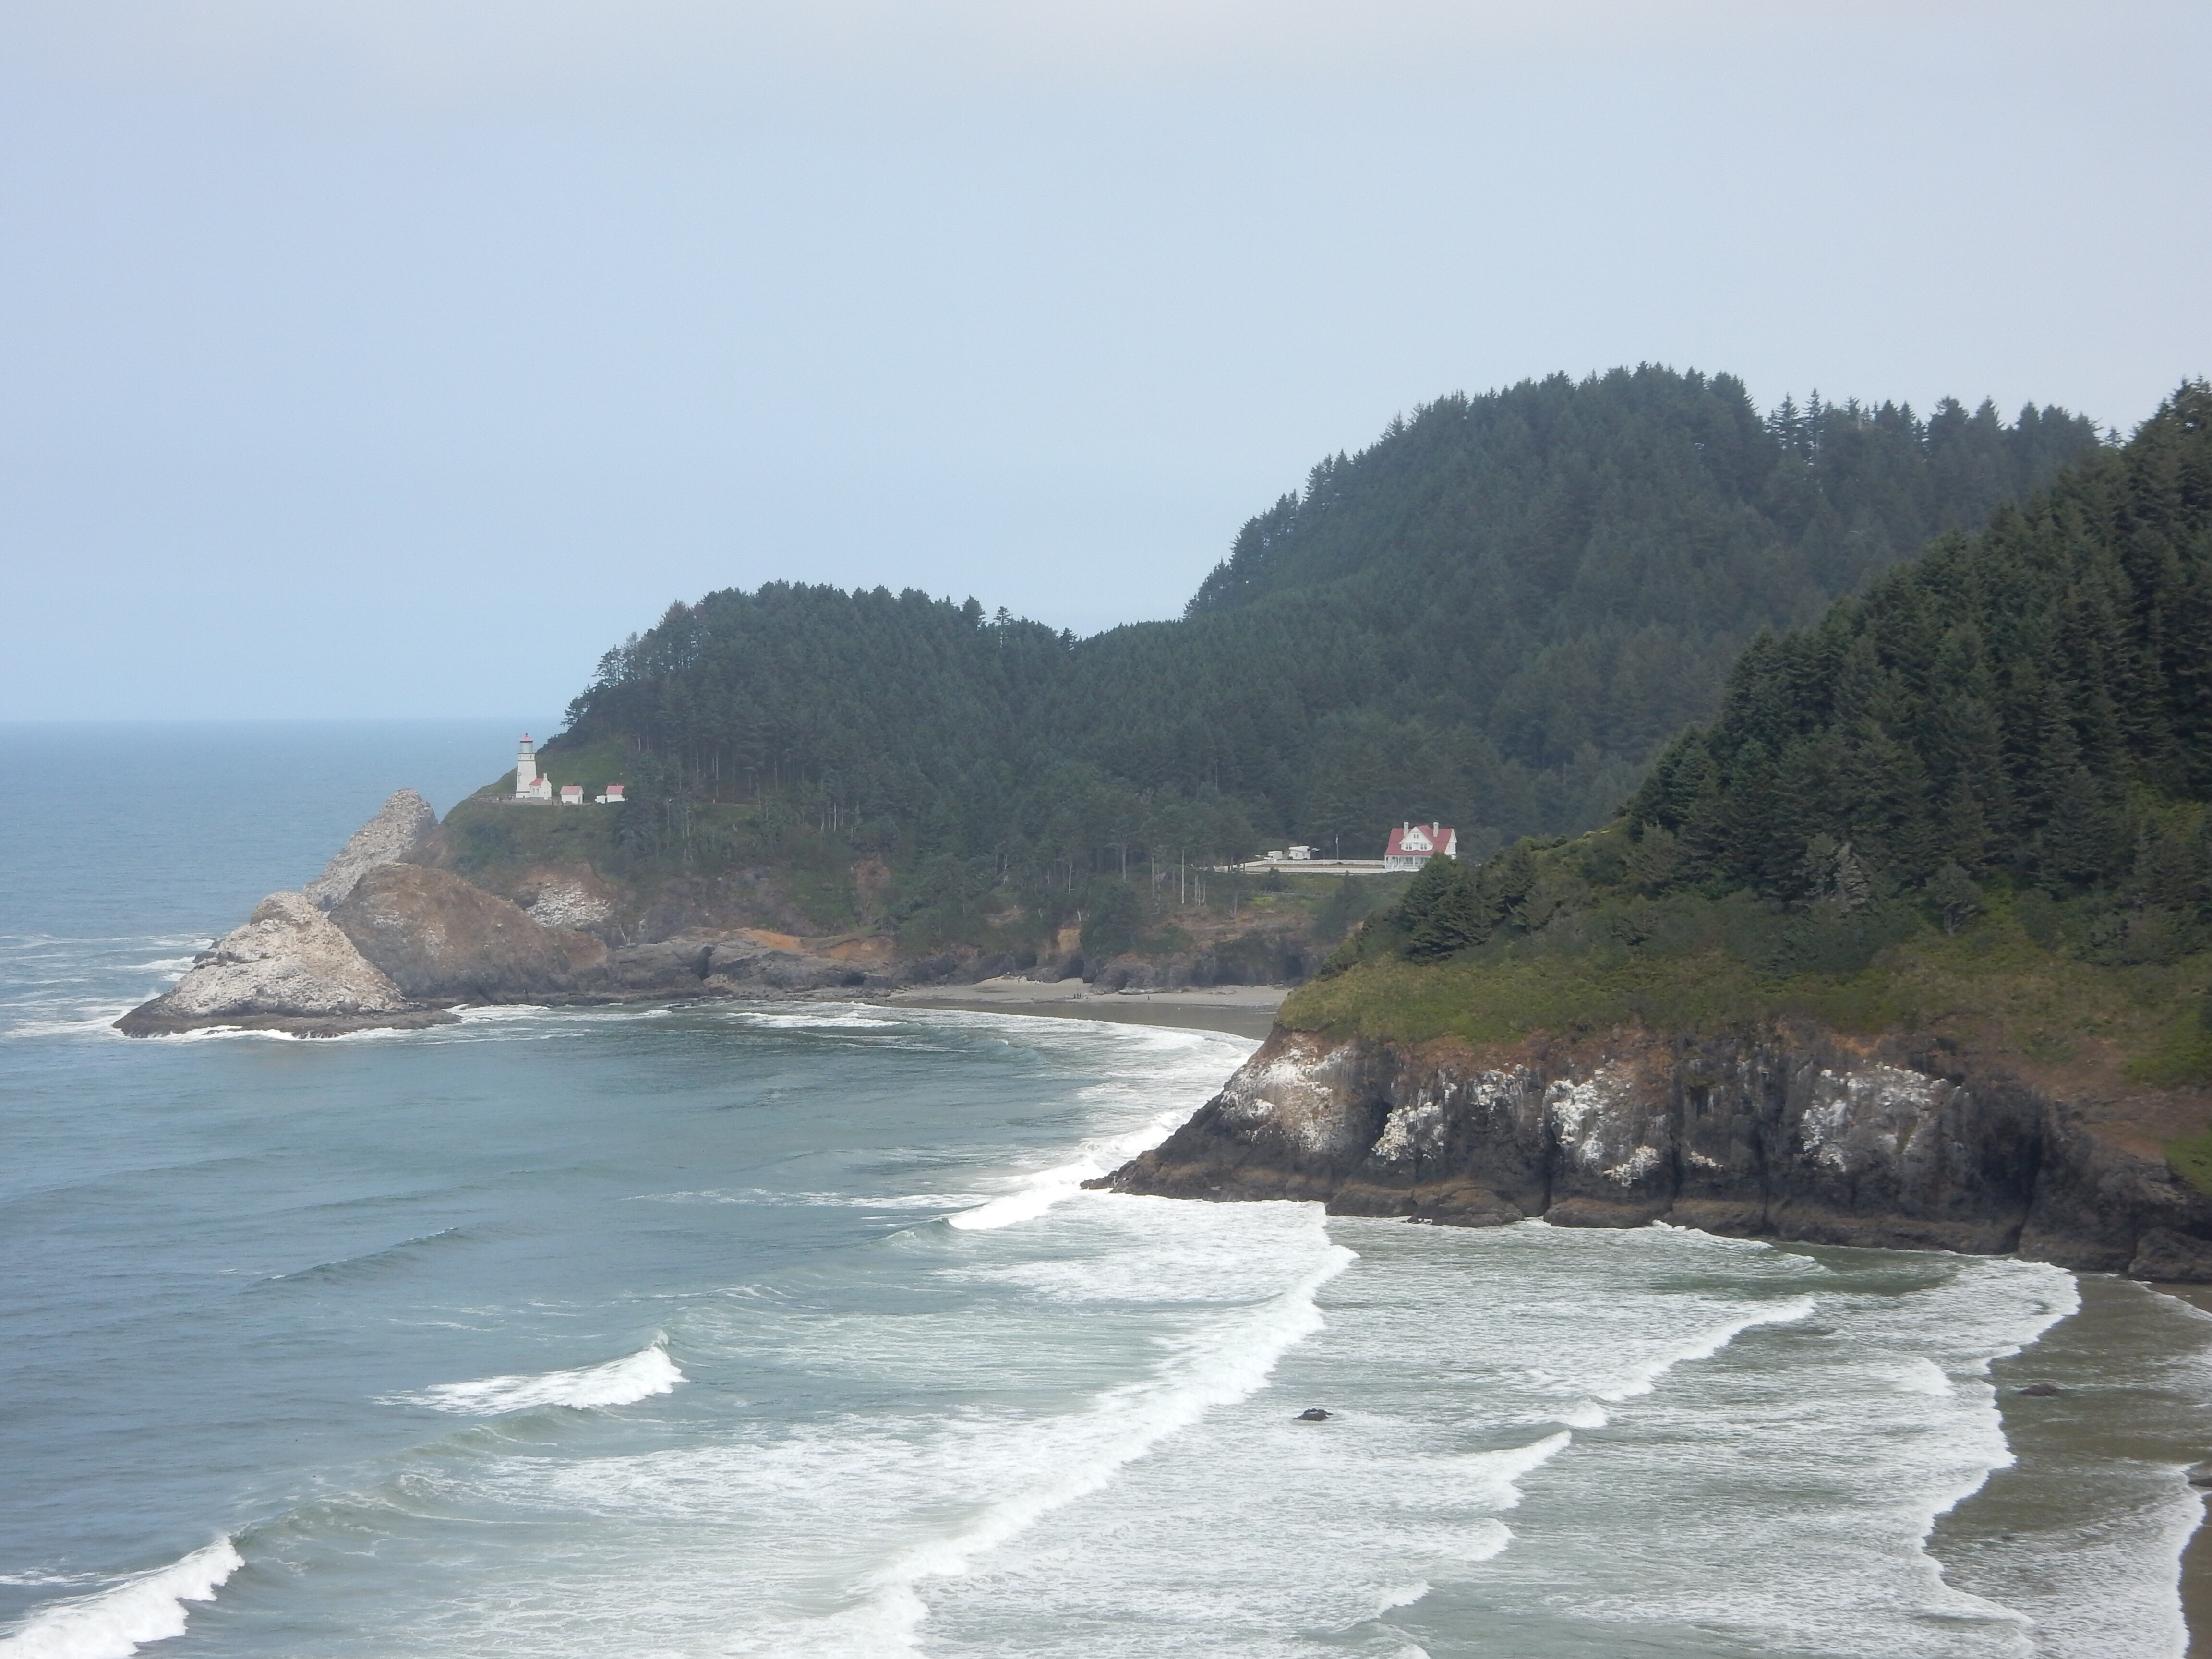 A distant look at the Heceta Head lighthouse and caretaker residence.